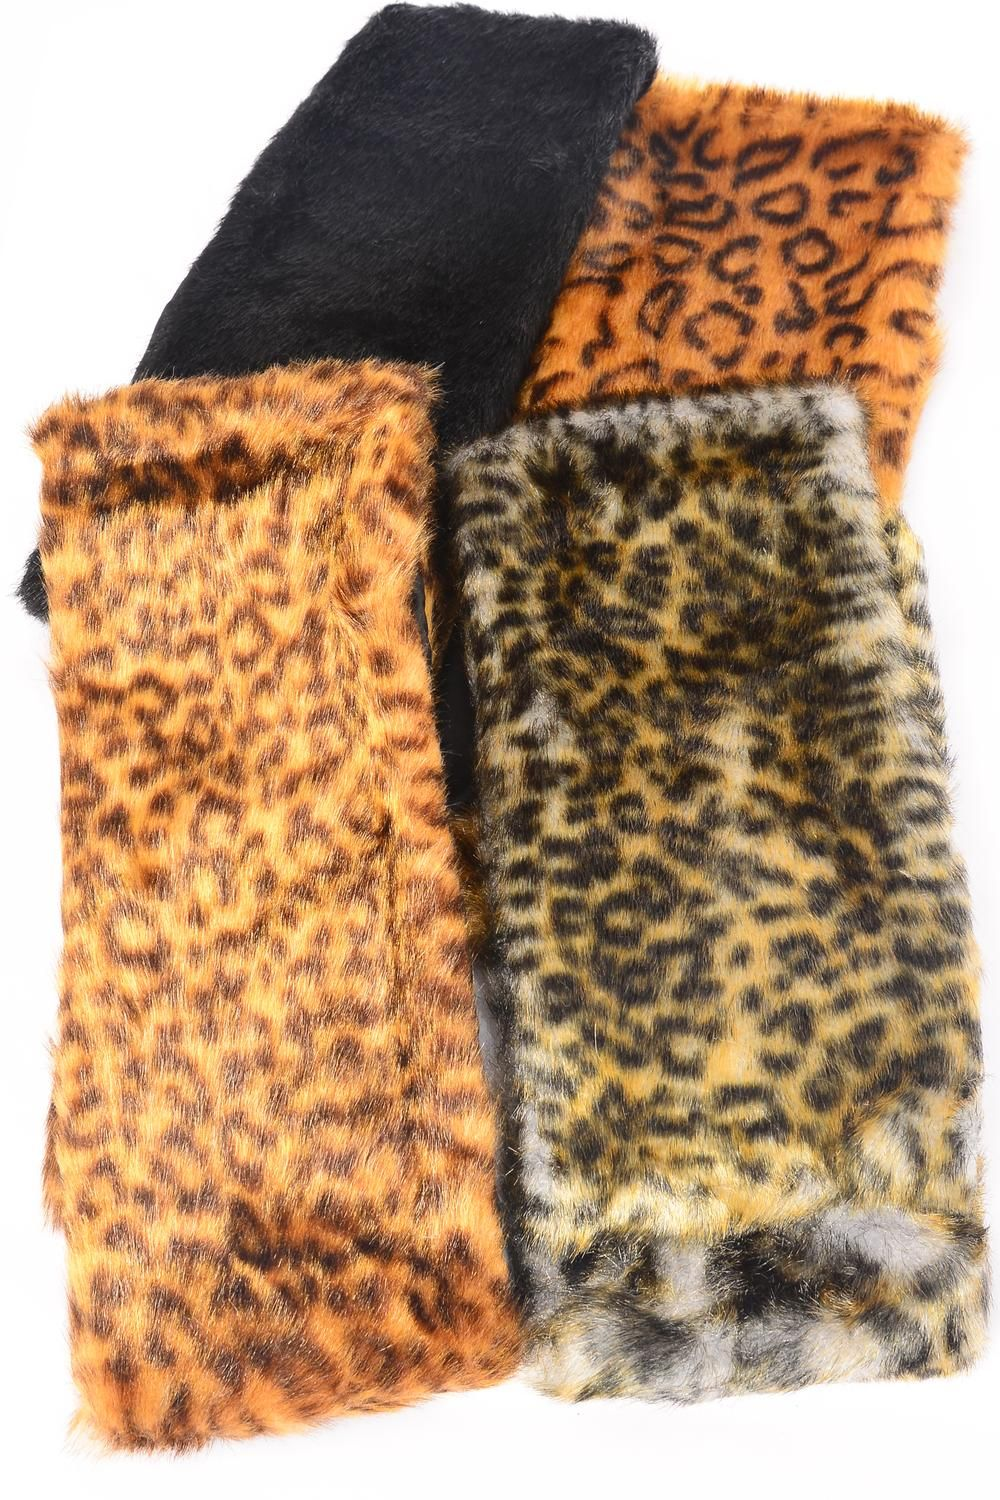 "Neck Scarf Faux fur Shine/PC match 99026 Size-36""x 5.5"" Wide,Choose Colors,OPP Bag & UPC Code"